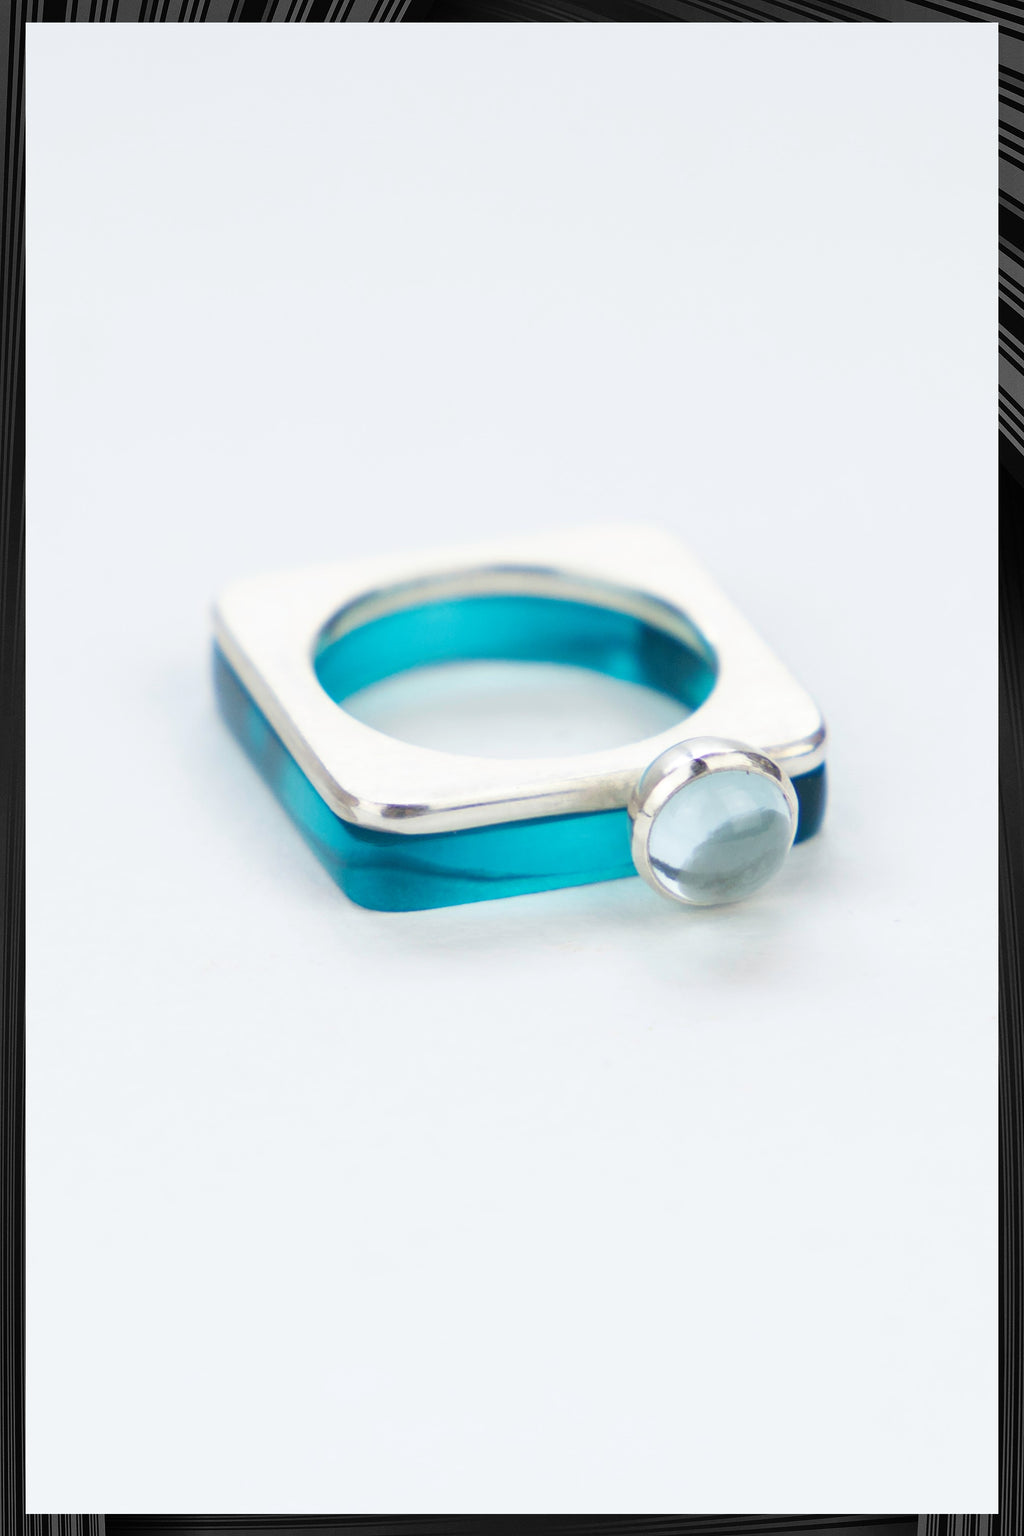 Pale Topaz Summer Blue Square Ring Set | Free Delivery - 2-3 Weeks Shipping